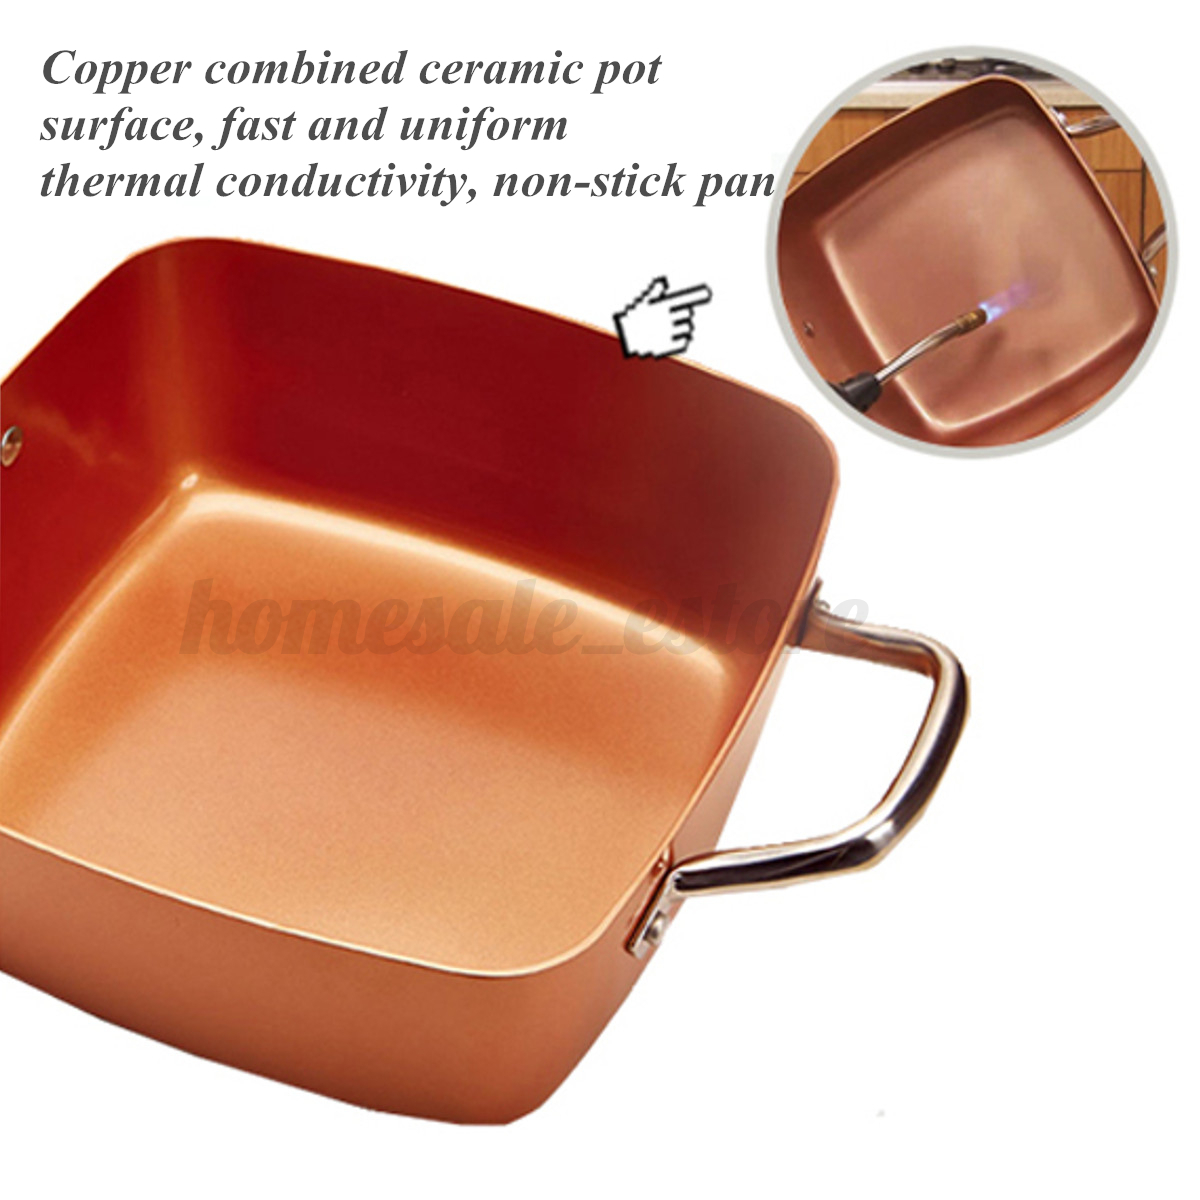 Induction Copper Round Pan Amp Set Square Pan Chef Glass Lid